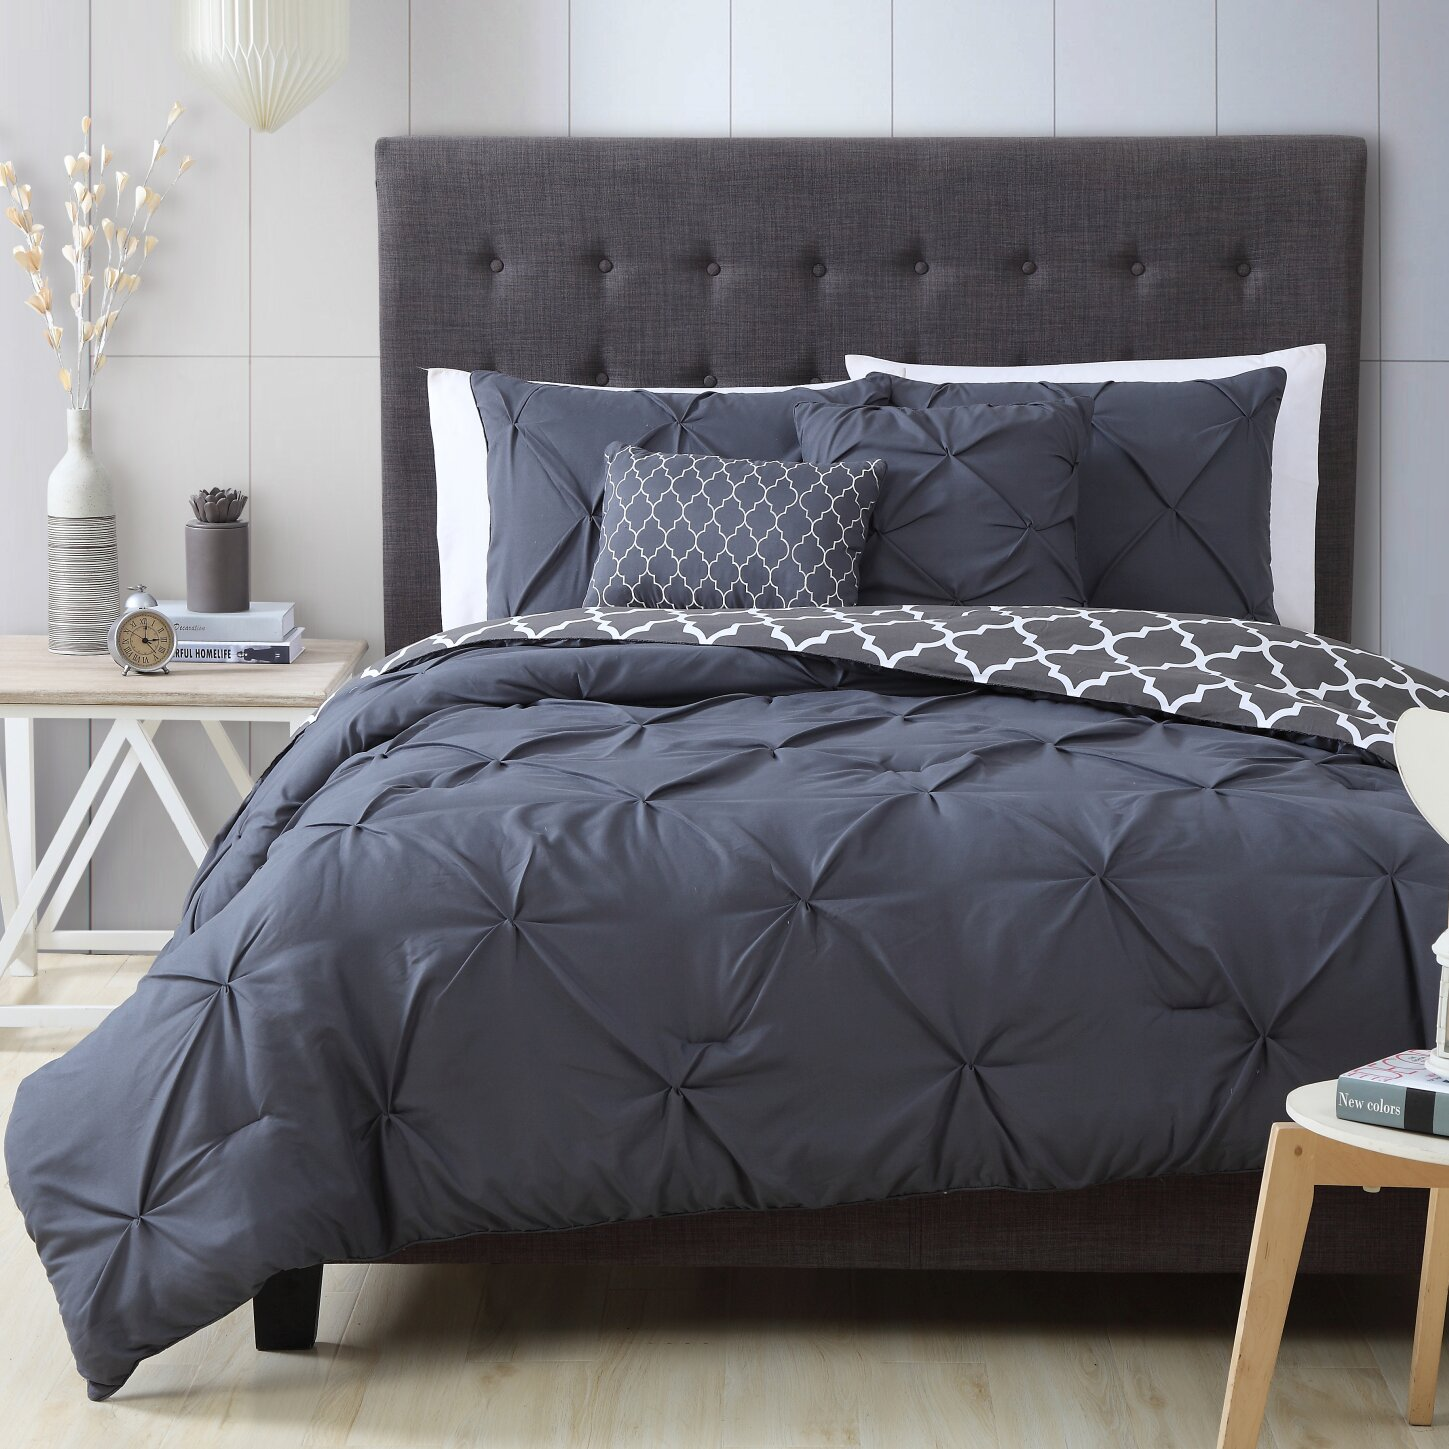 Bedding sets for women - Douglas 5 Piece Reversible Comforter Set